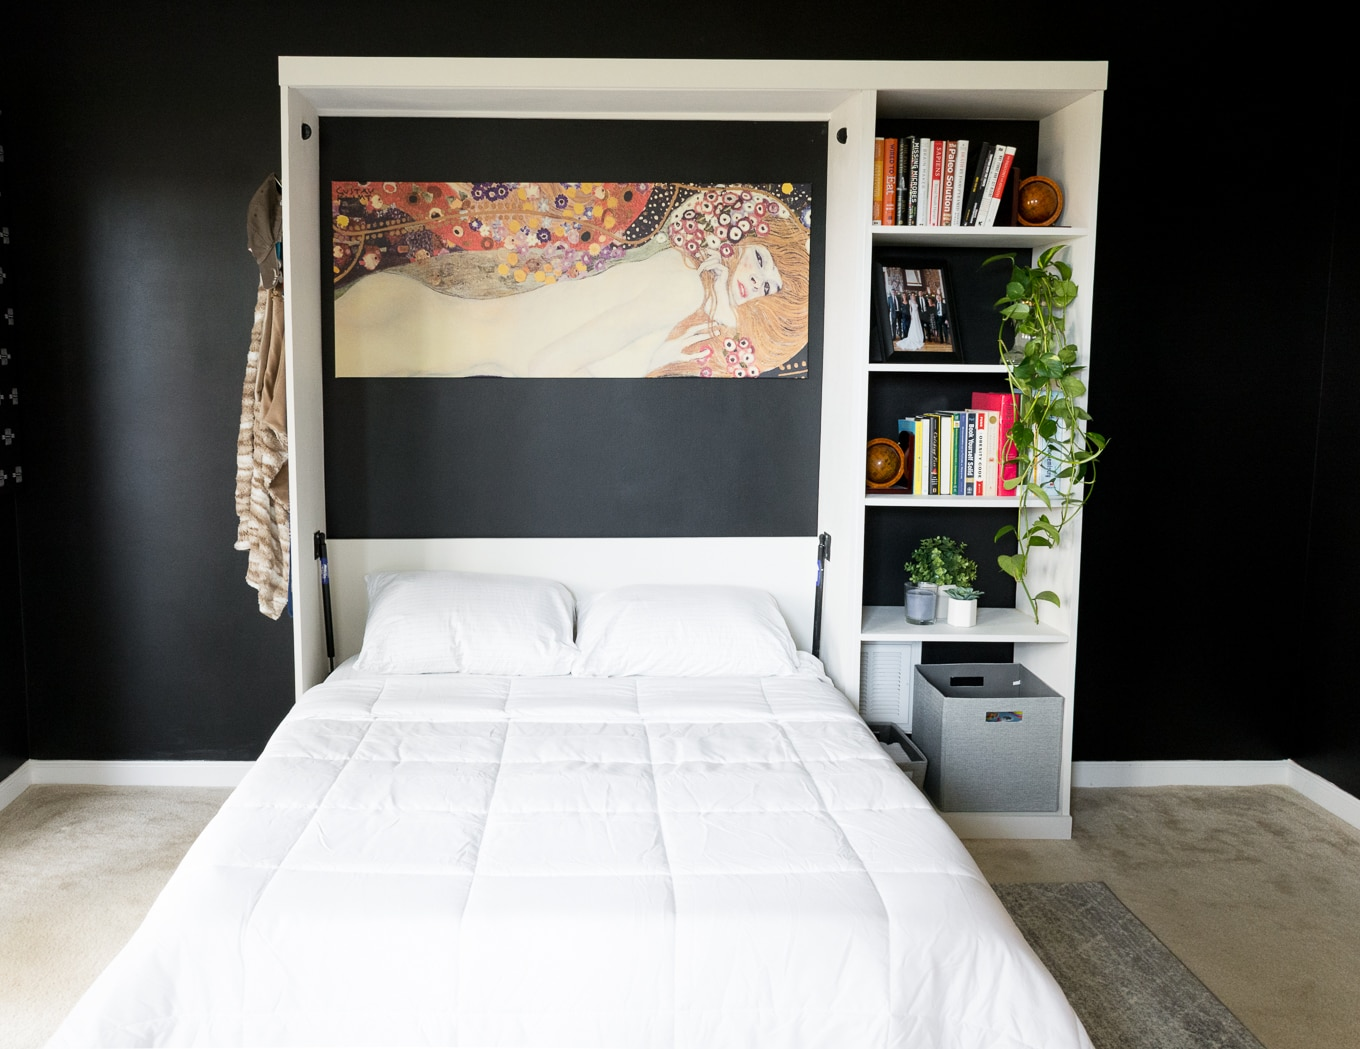 Murphy Bed Projects For Small Spaces | Apartment Therapy